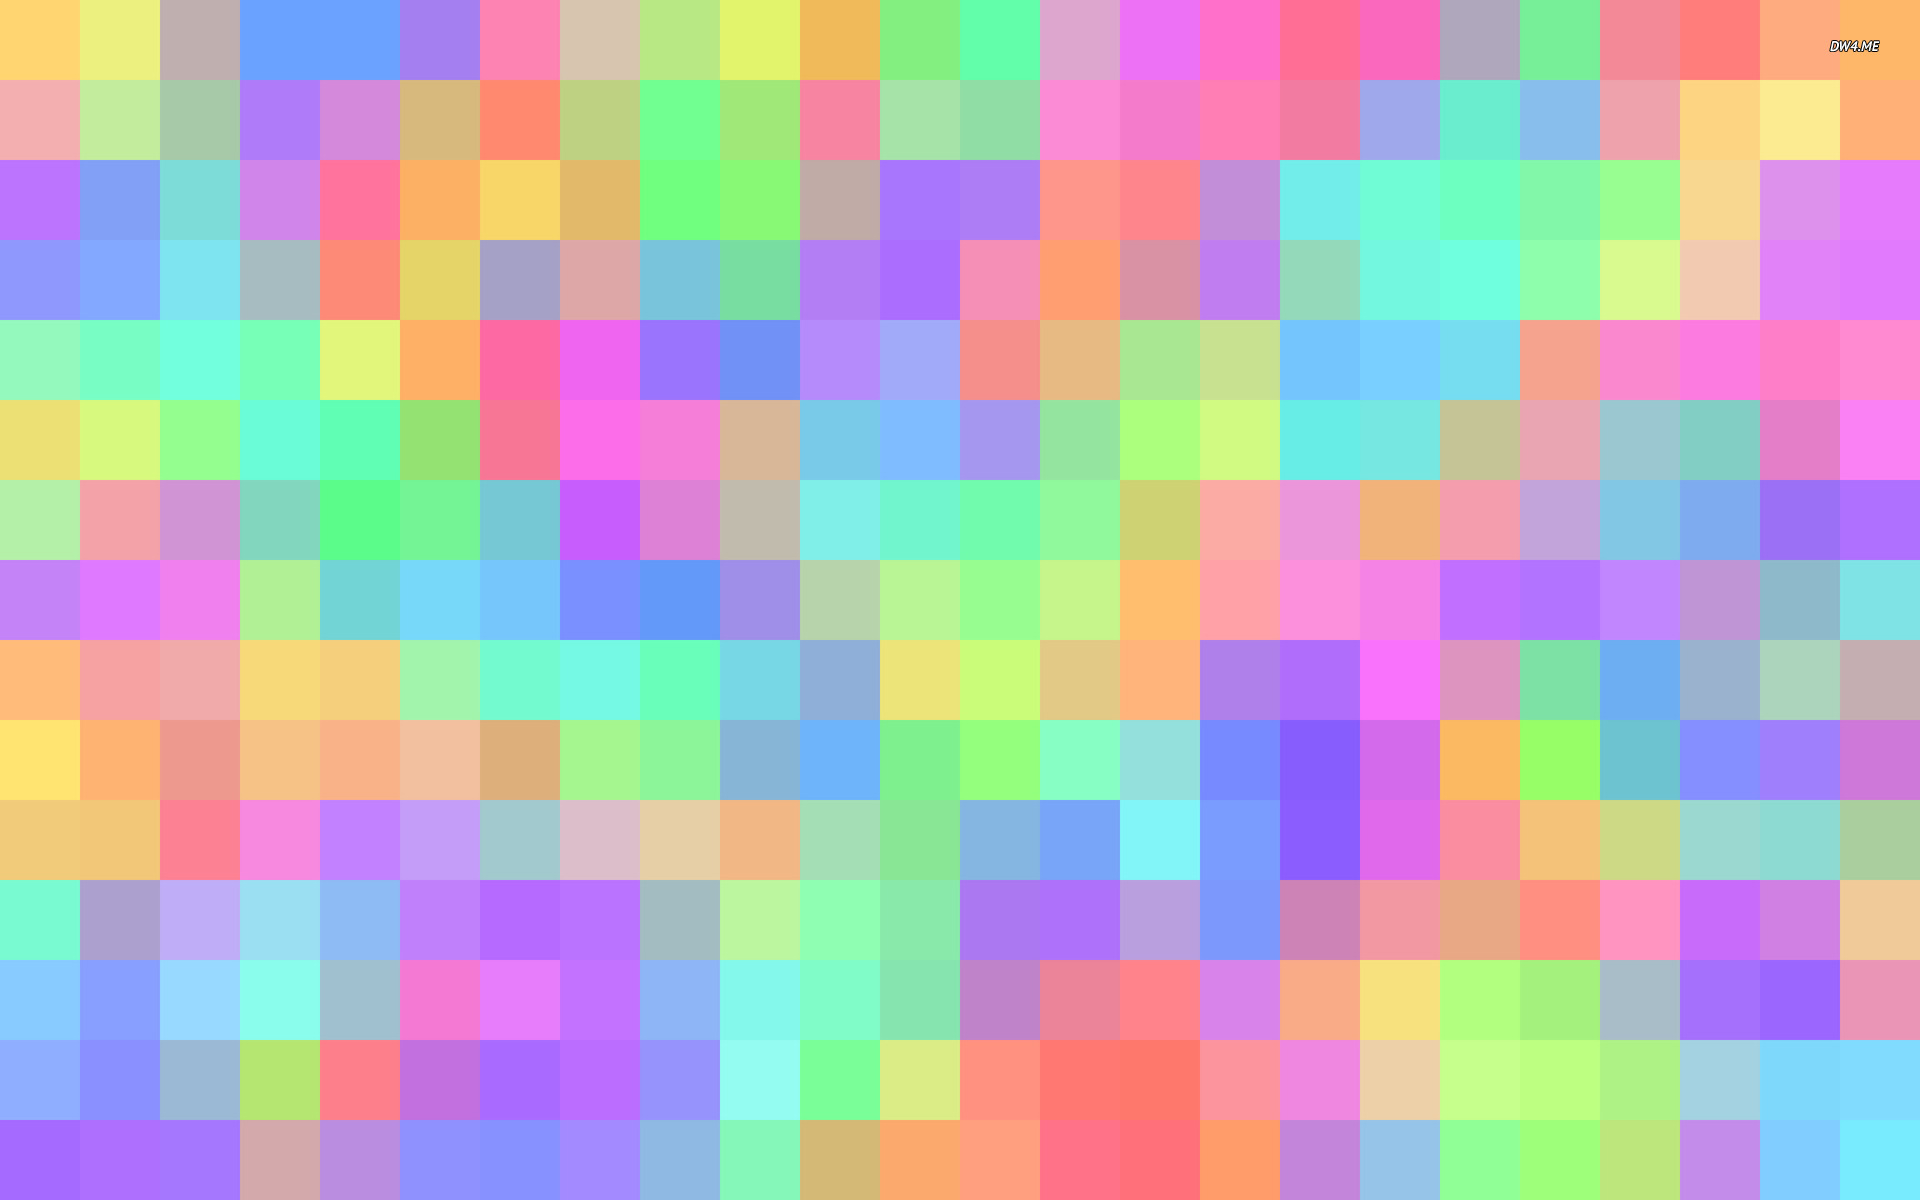 Free Download Pastel Squares Wallpaper Abstract Wallpapers 1230 1920x1200 For Your Desktop Mobile Tablet Explore 44 2560x1440 Wallpaper Tumblr Cute Desktop Wallpapers Tumblr 2440 X 1440 Wallpaper 2560 X 1440 Wallpaper Anime